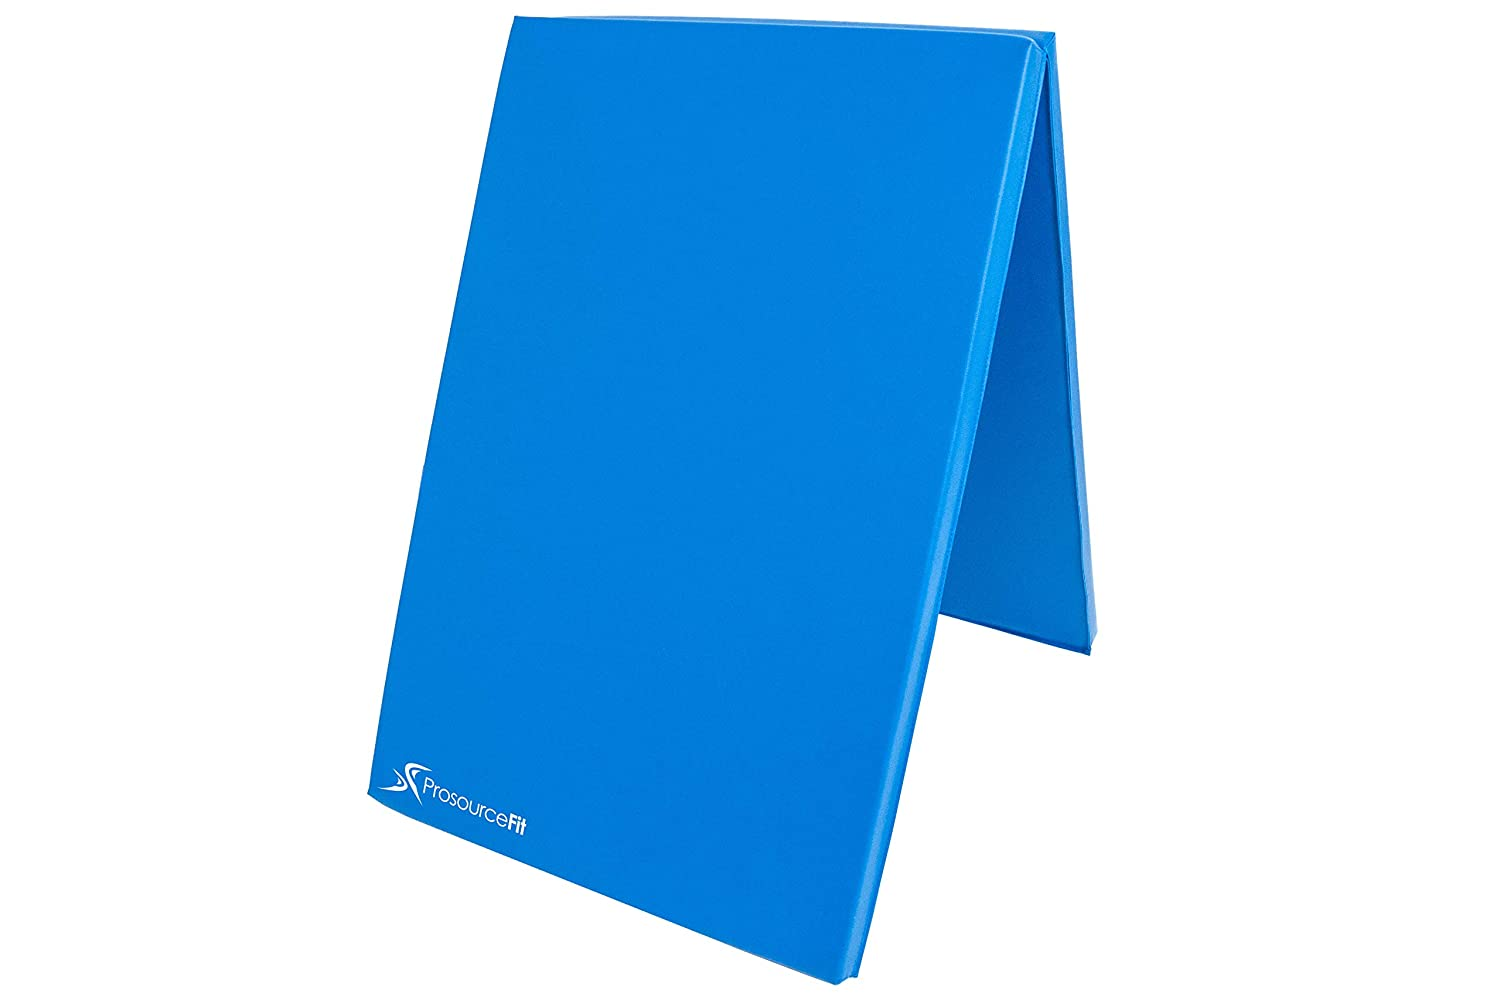 ProSource二つ折り折りたたみThick Exercise Mat 6 ' x2 ' with Carrying Handles for MMA、体操、ストレッチ、コアWorkouts B01EM736WA ブルー